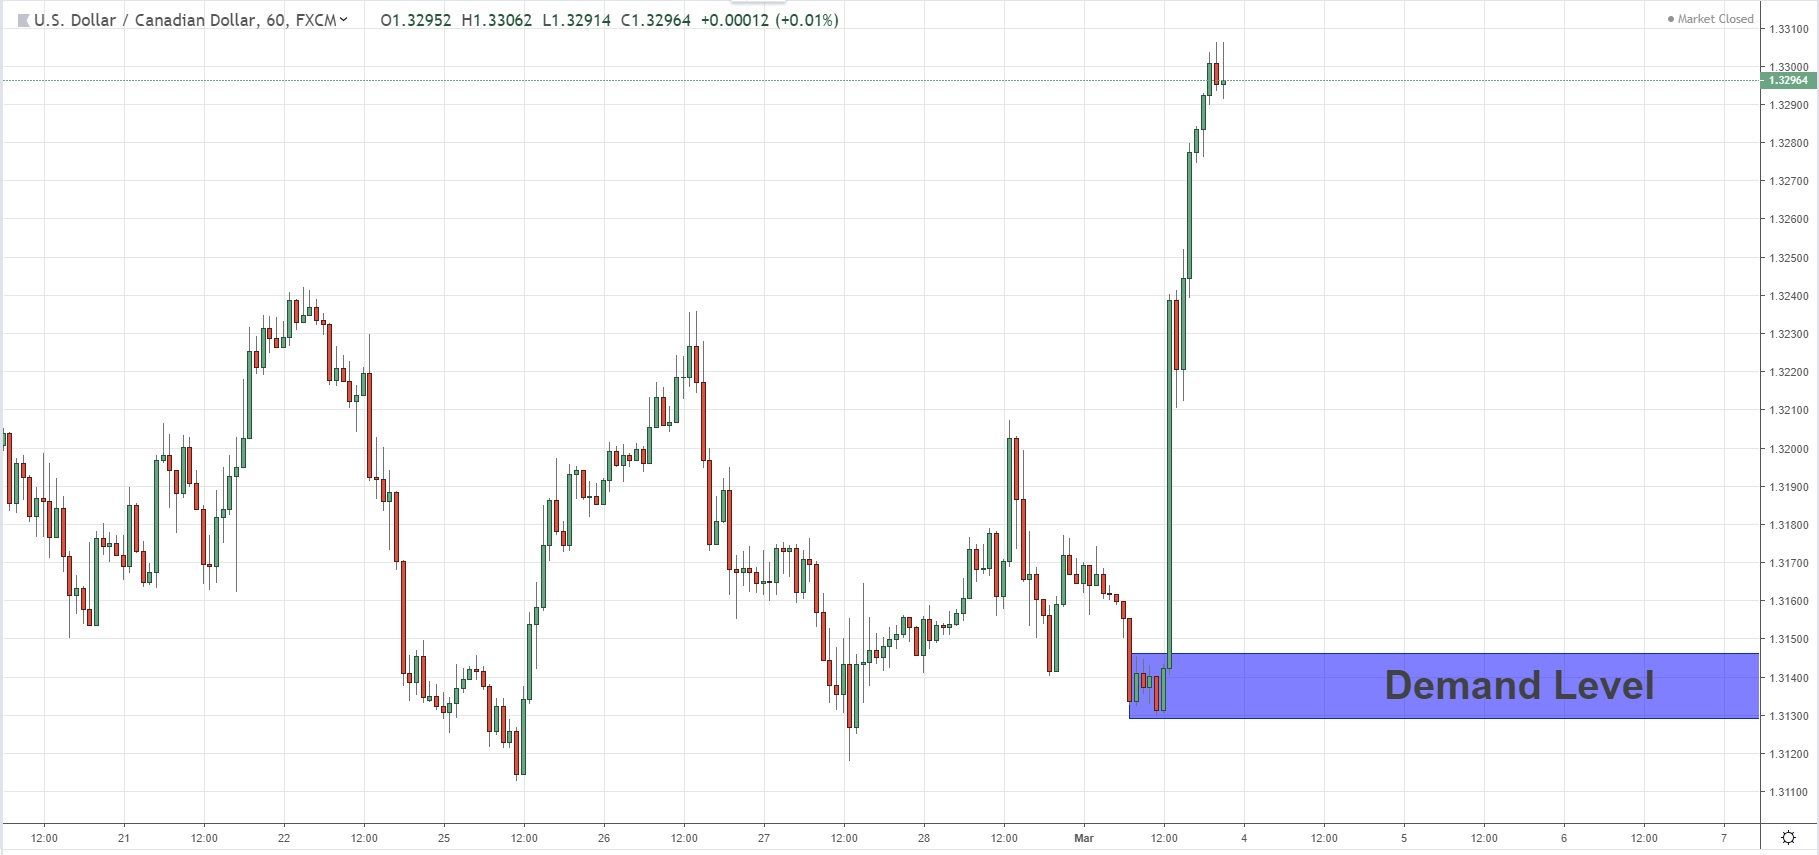 Continuation Demand Level For USDCAD 03/03/2019